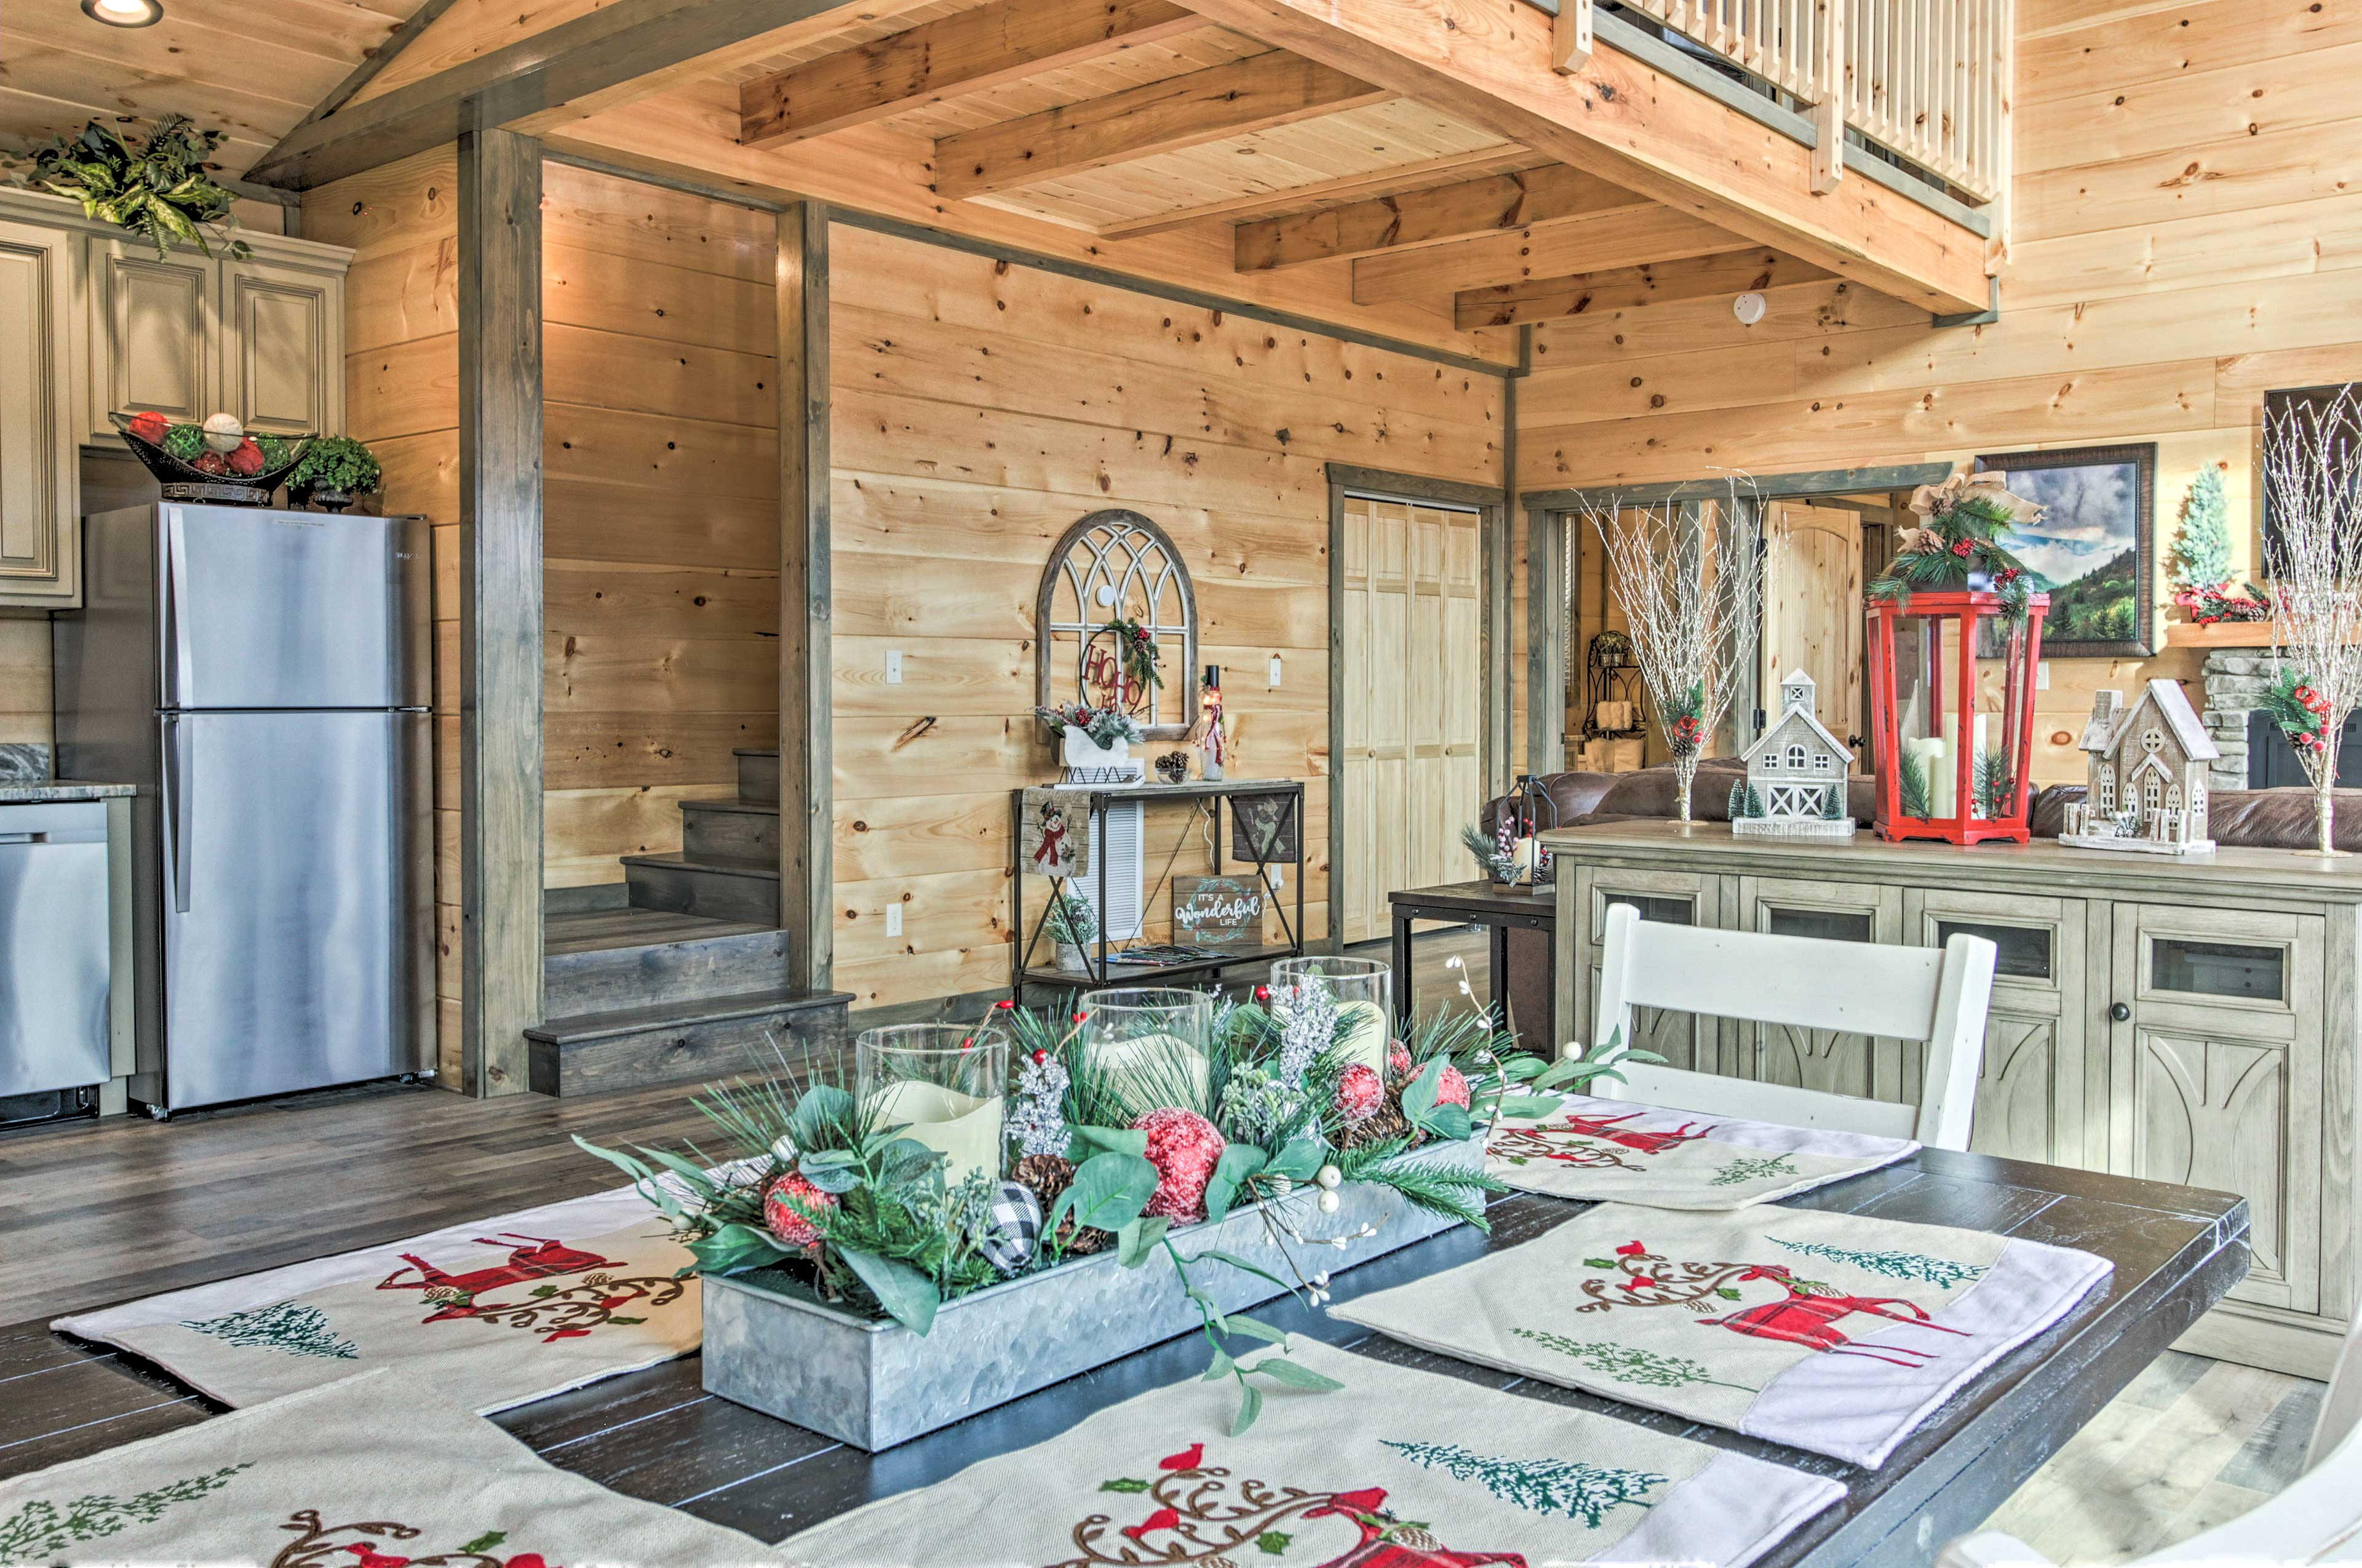 Wood paneling and cabin decor keep this new cabin feeling homey.